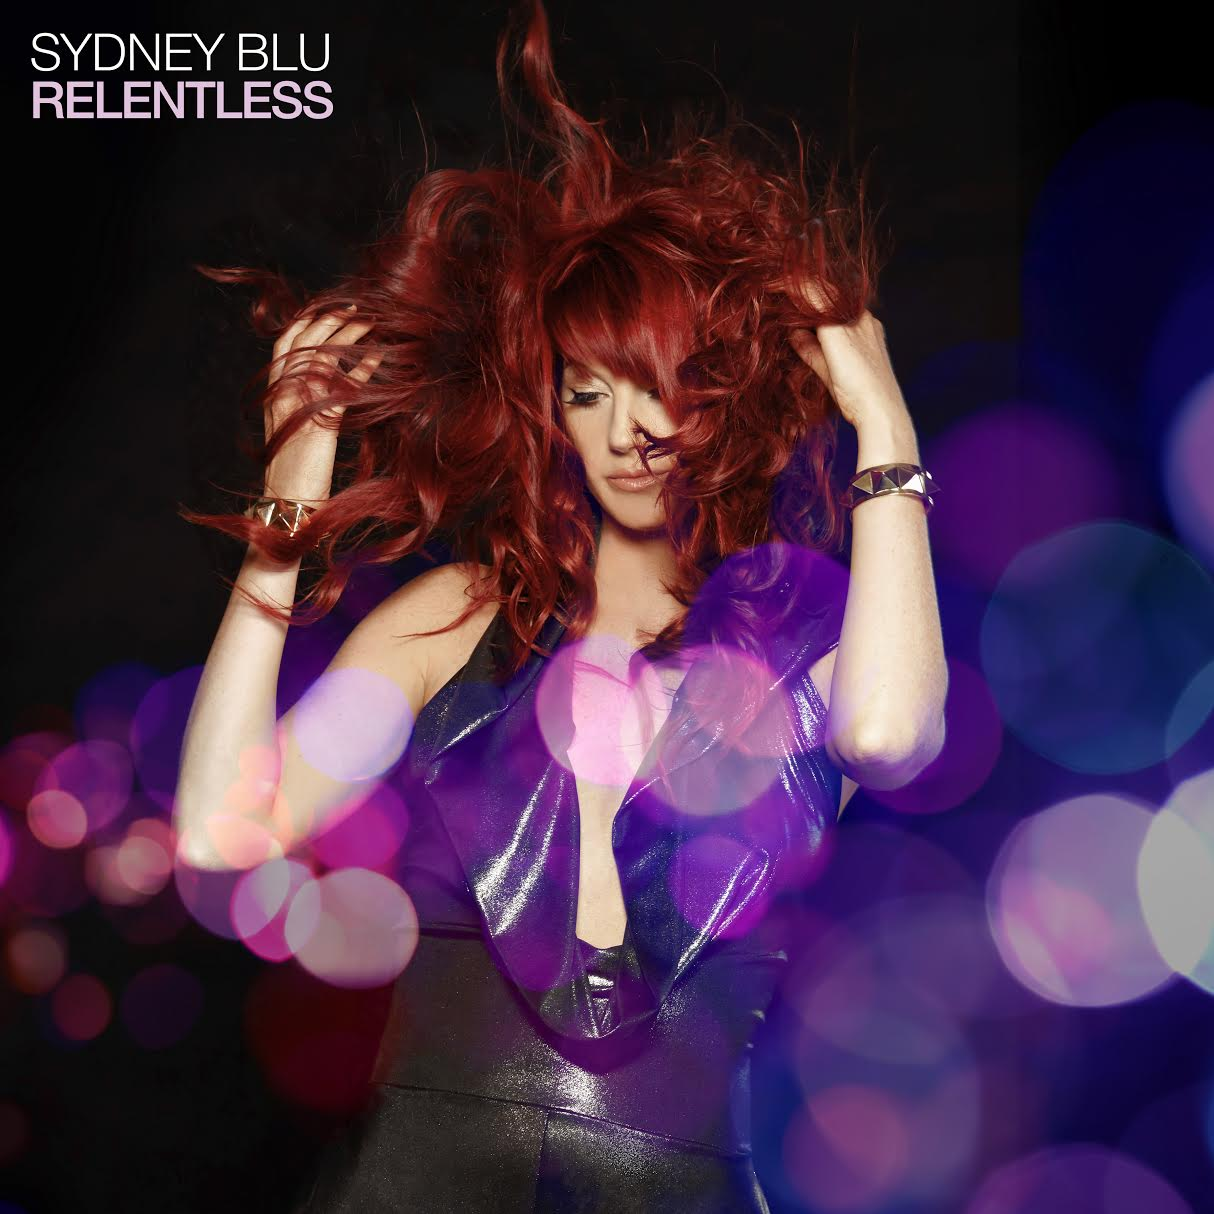 Sydney Blu New Album Art